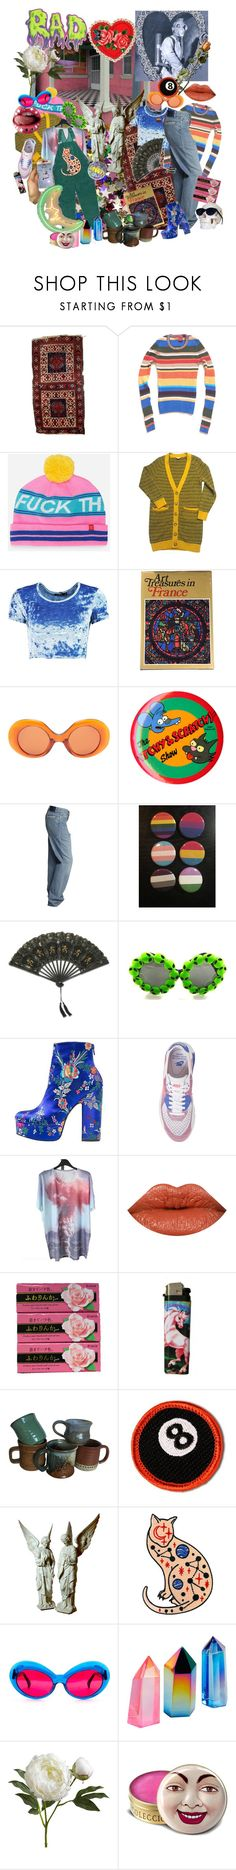 """""""Our love transcends through the dimensions"""" by minimal-criminal ❤ liked on Polyvore featuring Lazy Oaf, Kenzo, Boohoo, The Row, Hot Topic, Gasoline Glamour, NIKE, GAS Jeans, Brandy Melville and Christian Roth"""